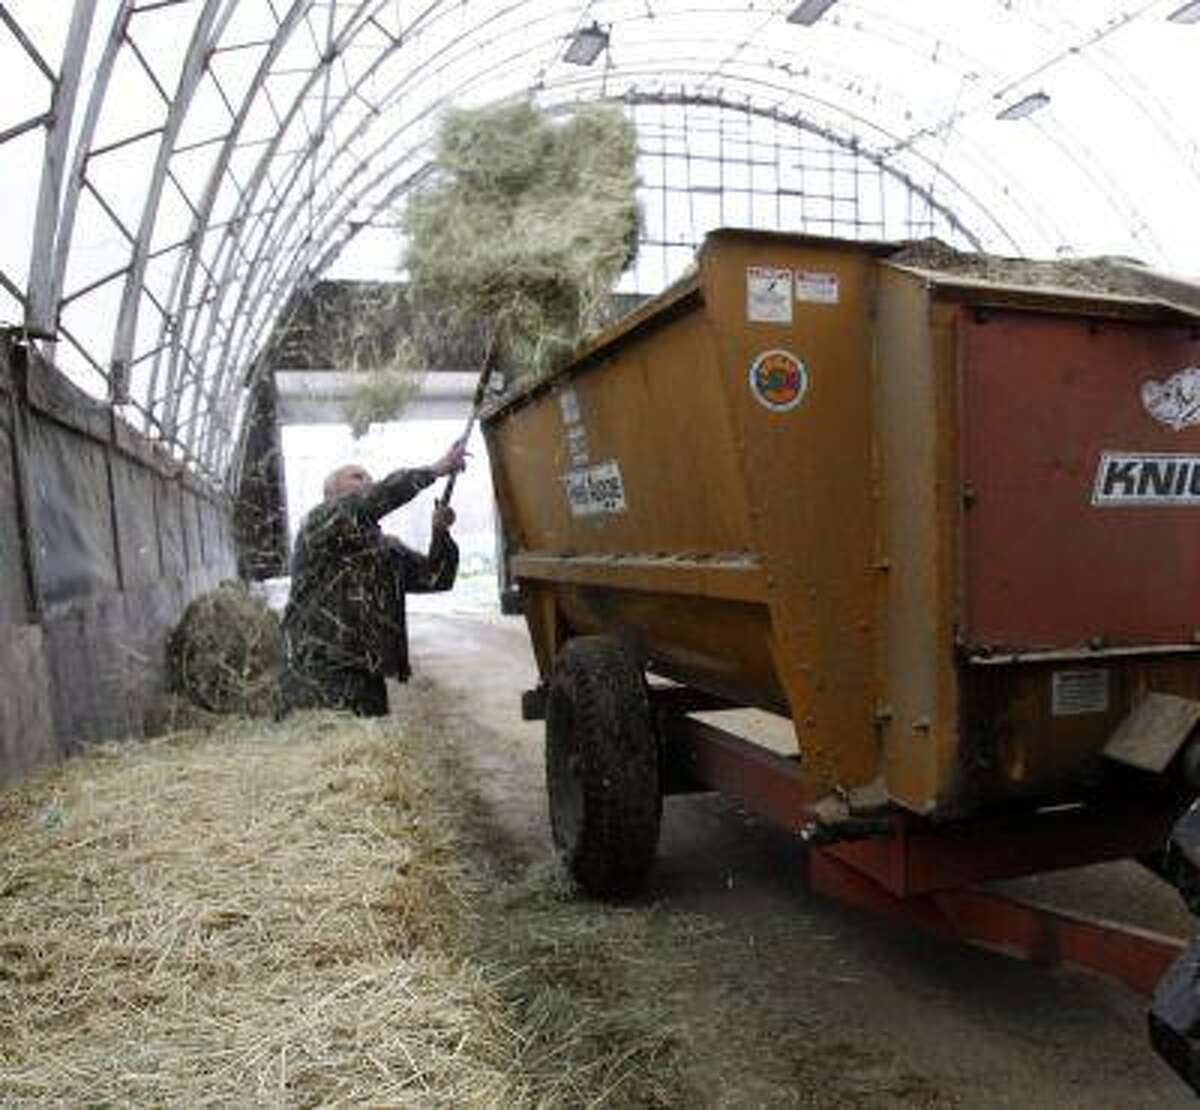 FILE - This Oct. 16, 2012, file photo shows farmer Myles Goodrich loading a feed wagon at his farm in Danville, Vt. House Republicans strip food stamps from the farm bill in an attempt to get the legislation passed after an embarrassing defeat last month. White House has threatened a veto and Democrats are crying foul. bill had traditionally paired two programs to get bipartisan support but conservatives said original bill did not cut food stamps deep enough. Timing of House vote unclear. (AP Photo/Toby Talbot, File)